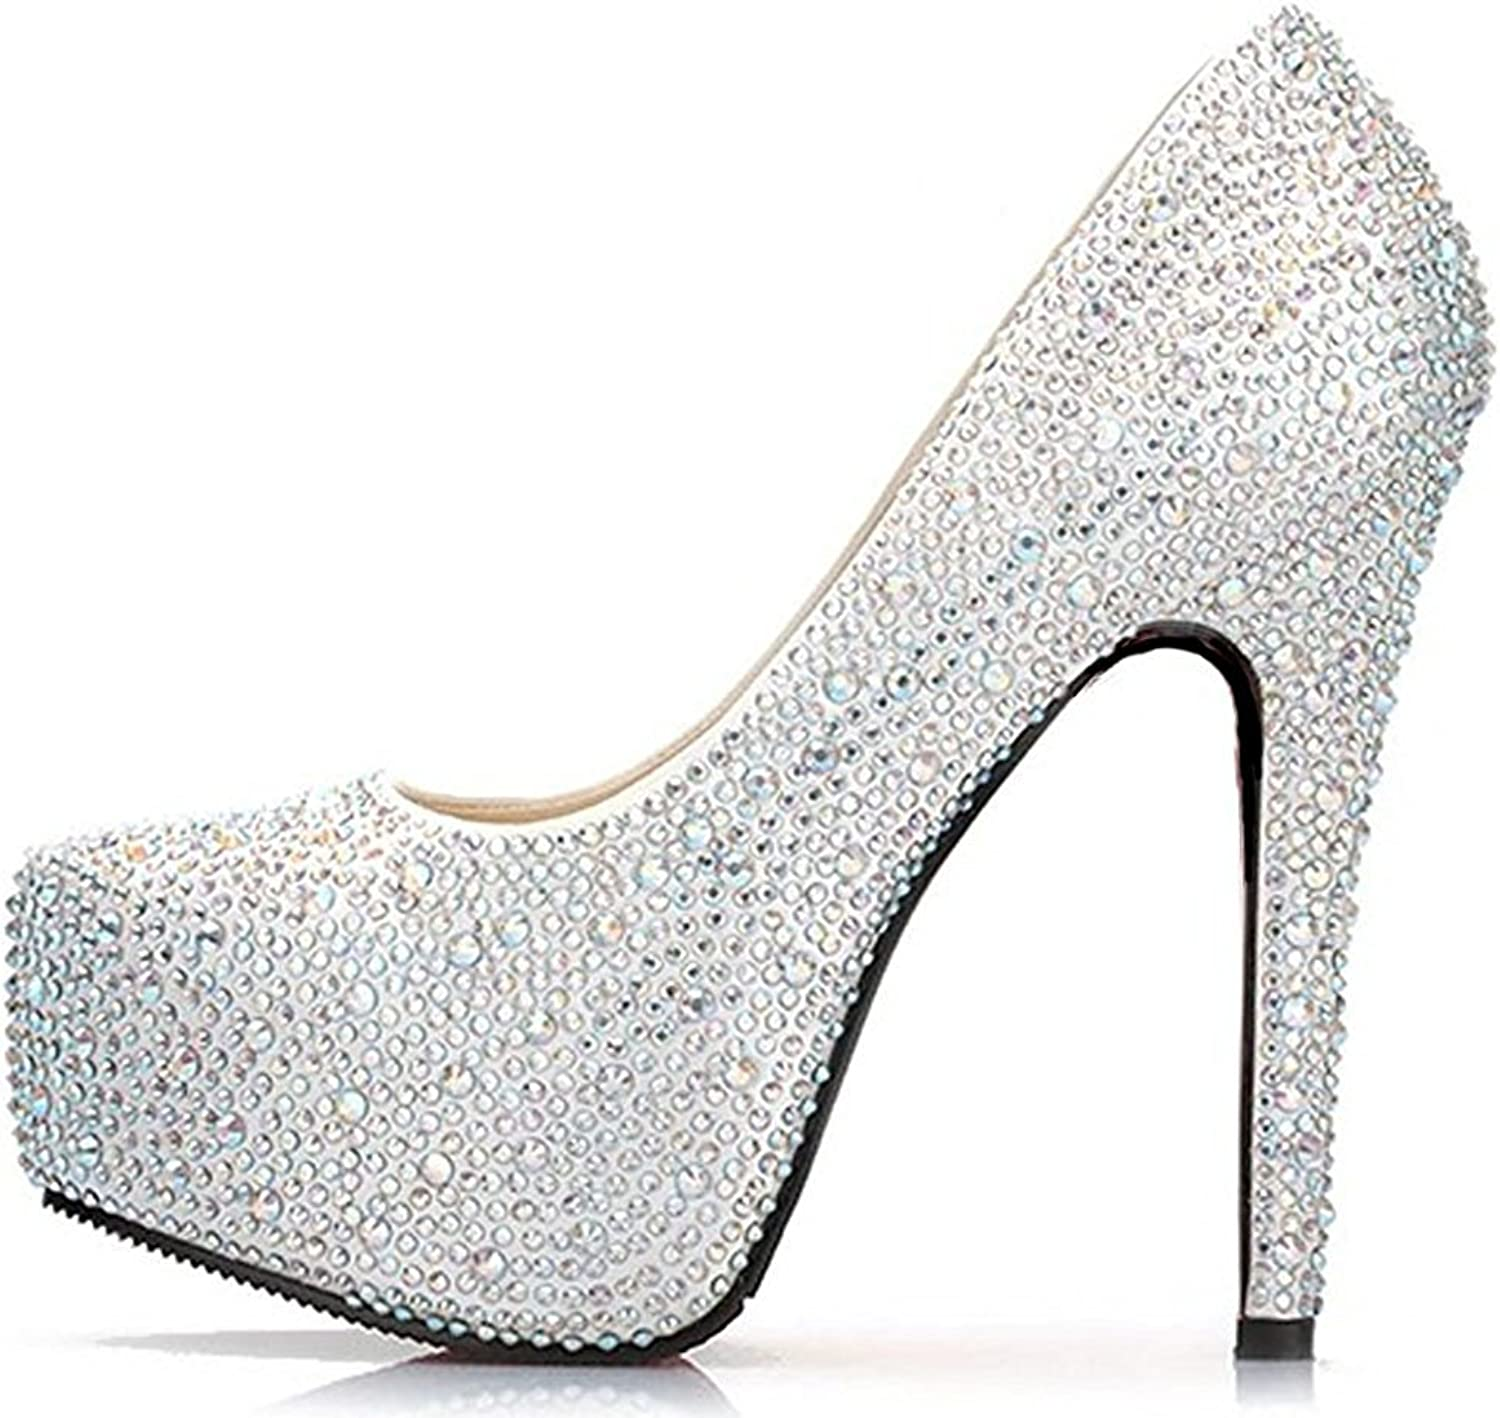 APXPF Women's Glitter Stone Wedding Platforms High Heels Bridal shoes Prom Party Pumps